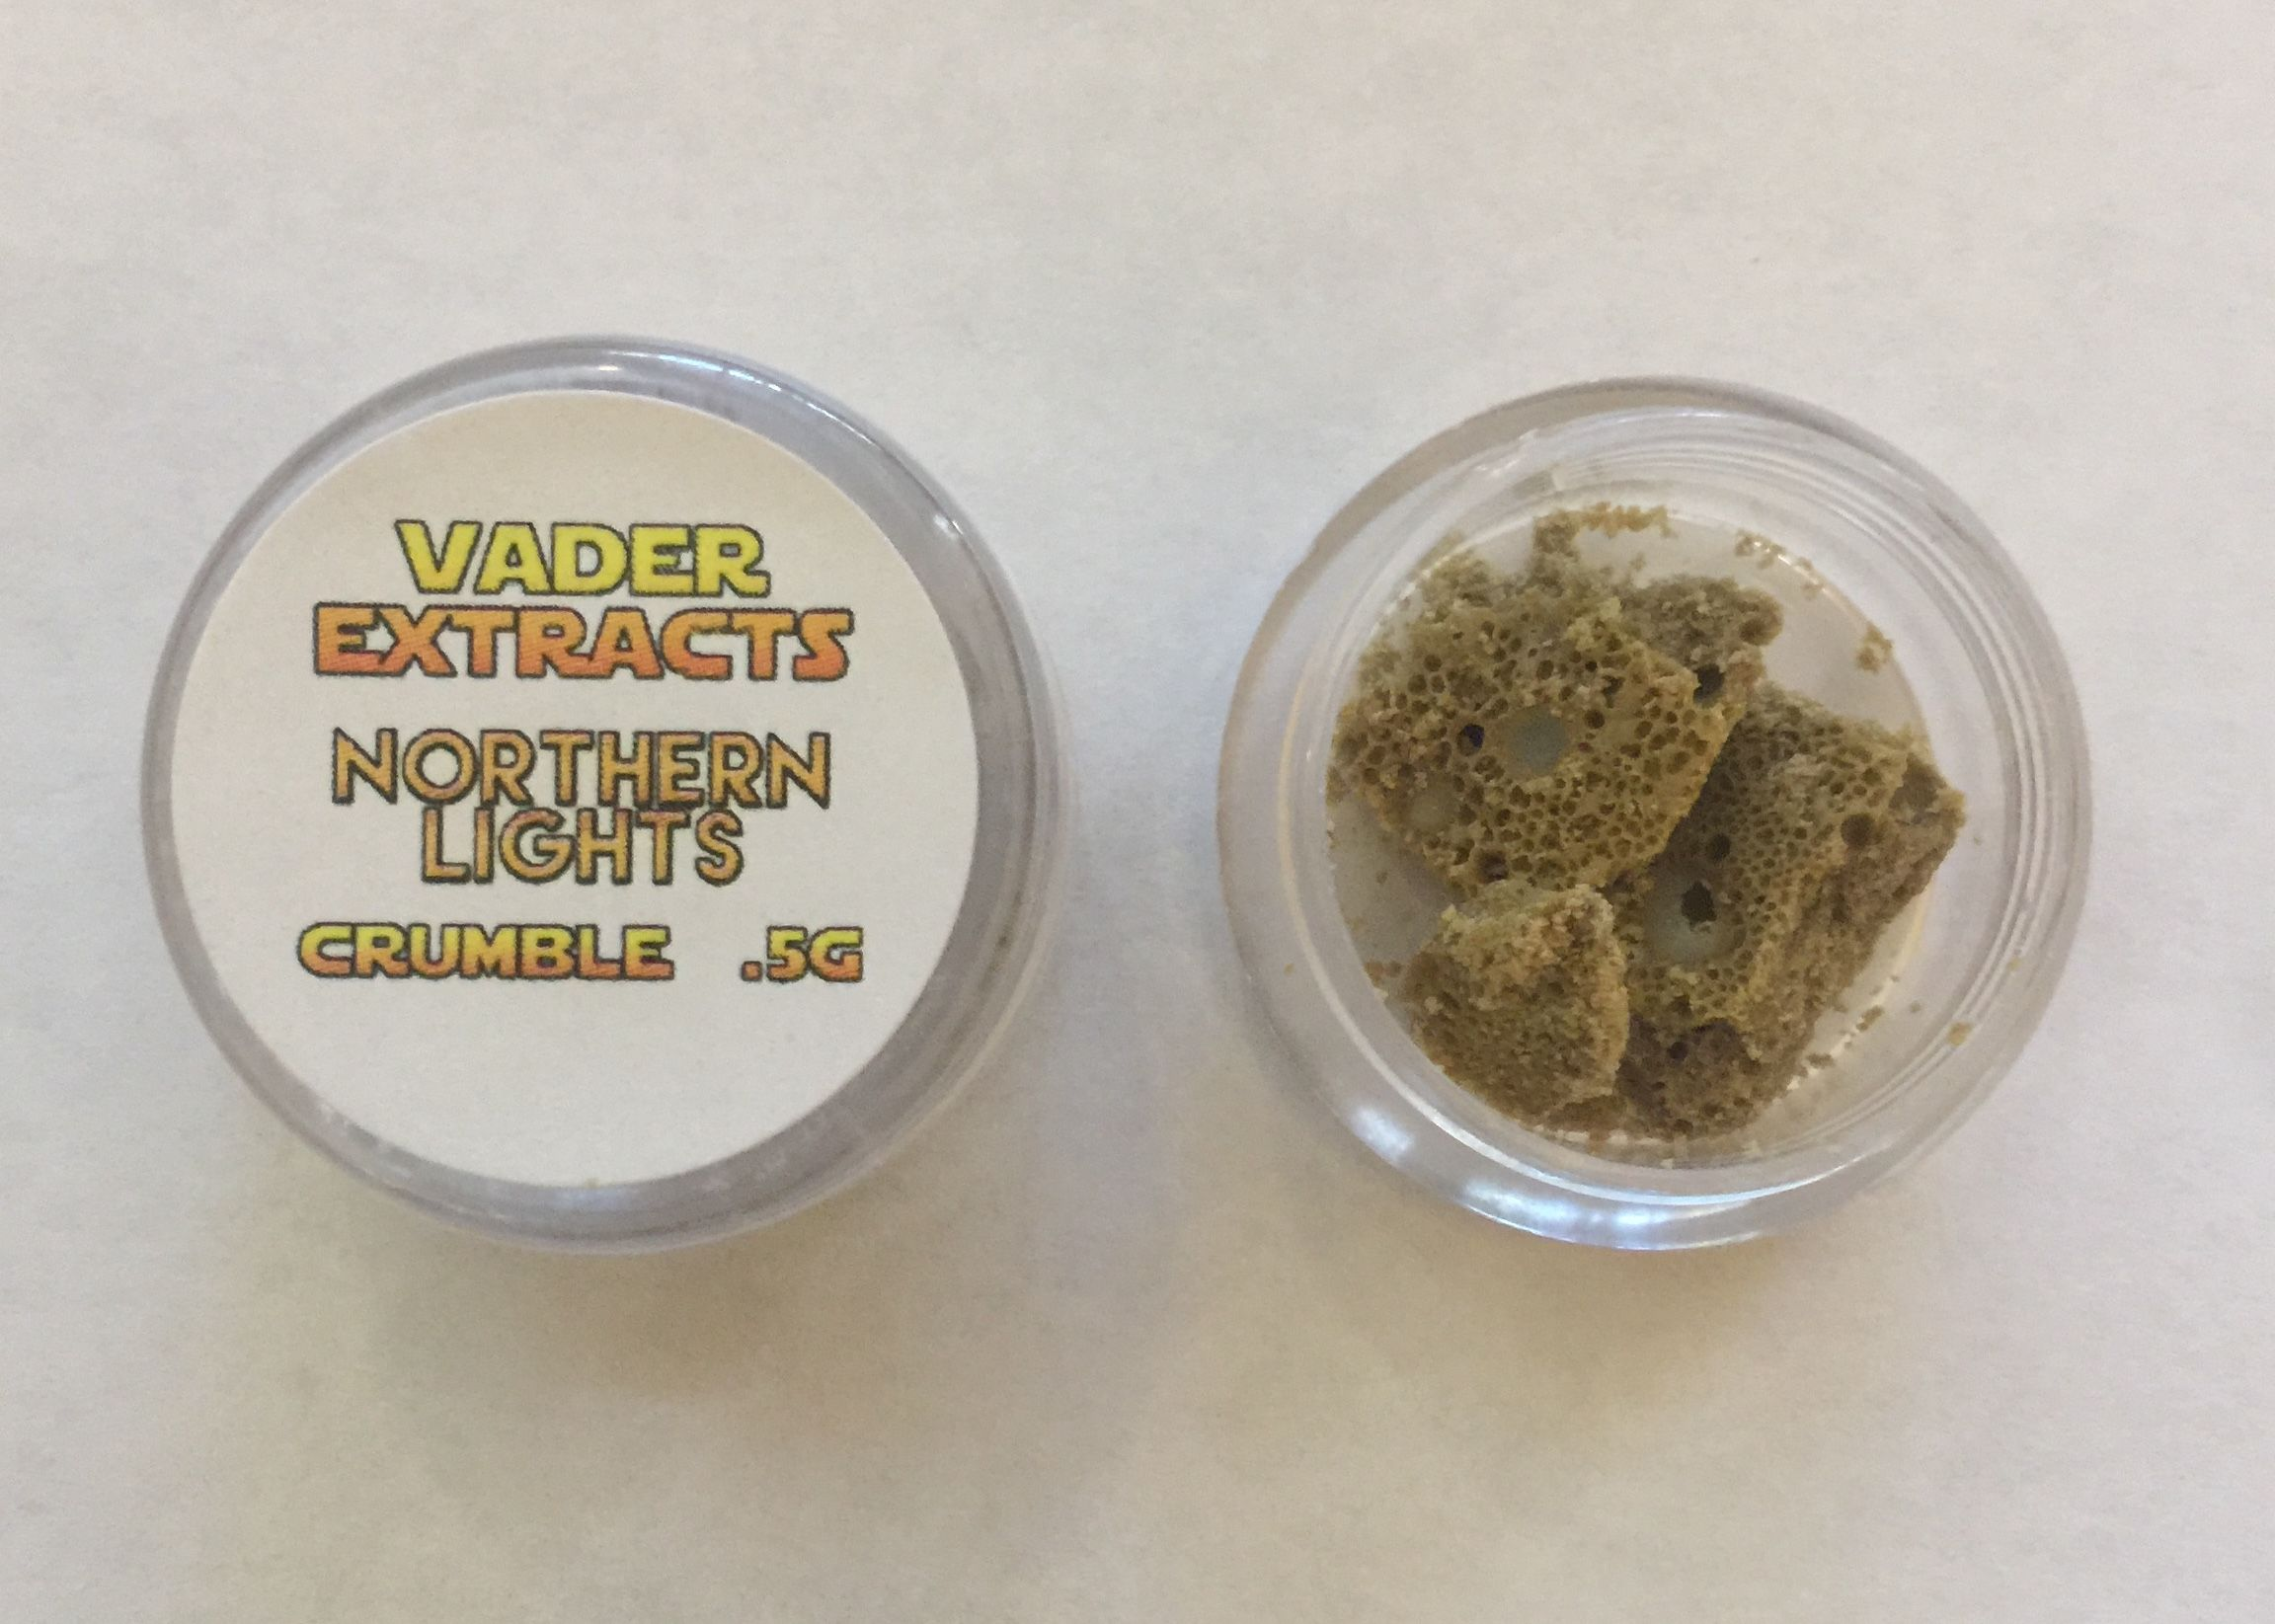 Vader Extracts - Northern Lights Crumble